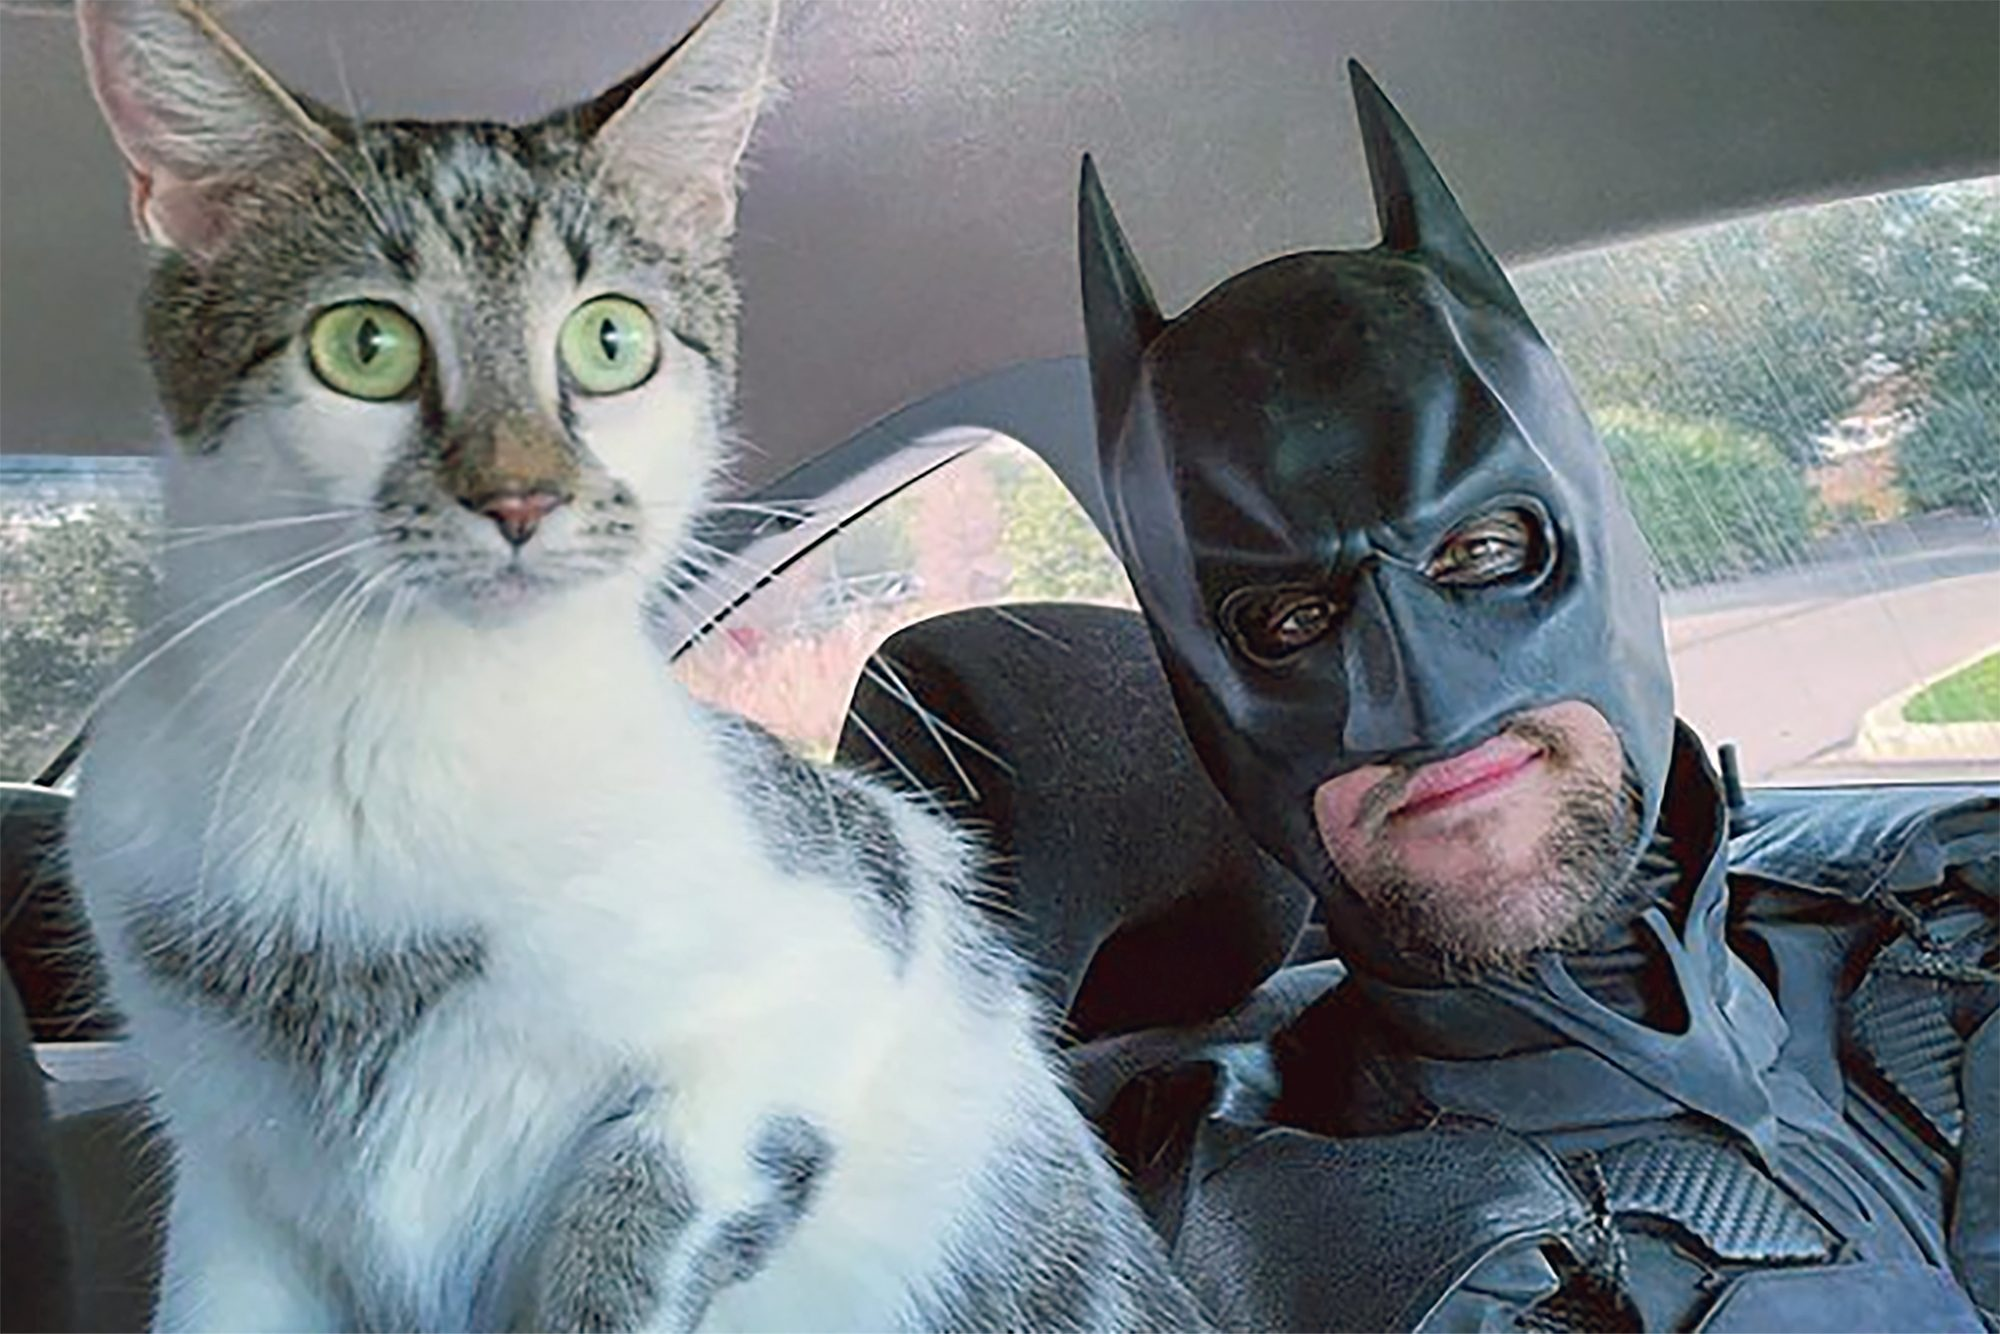 Batman posing with grey and white cat